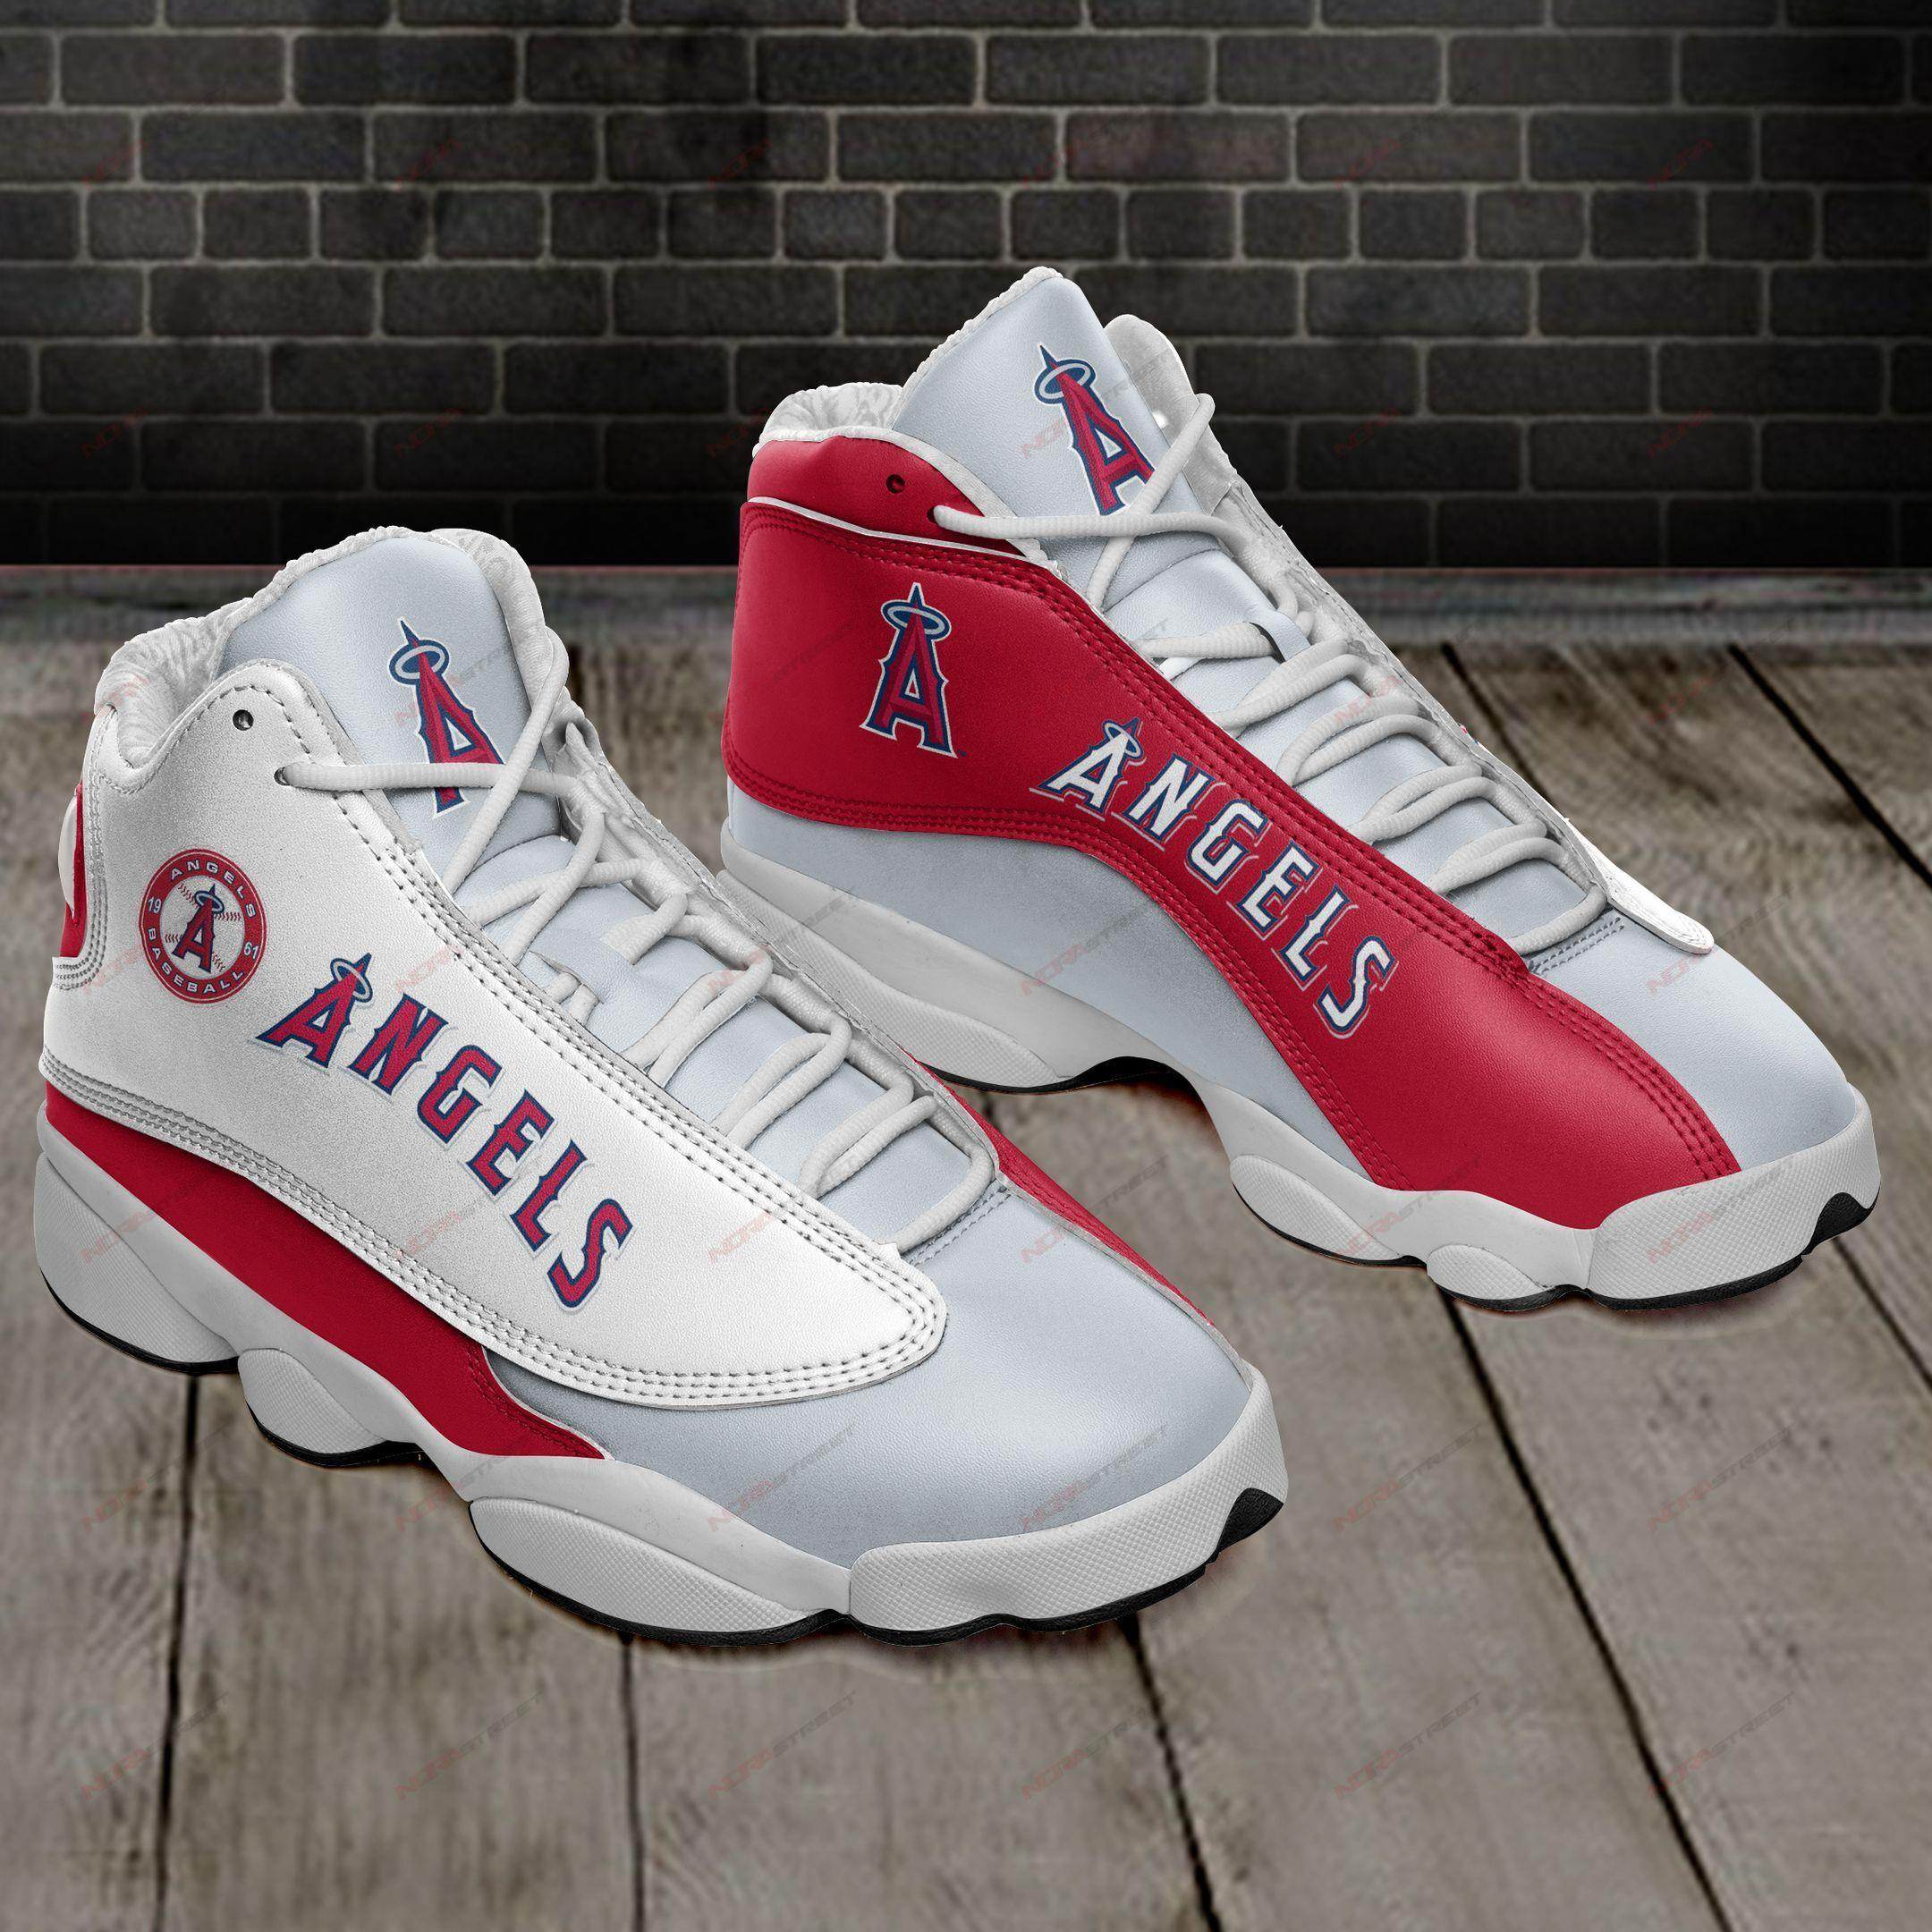 Los Angeles Angels Of Anaheim Air Jordan 13 Sneakers Sport Shoes Full Size